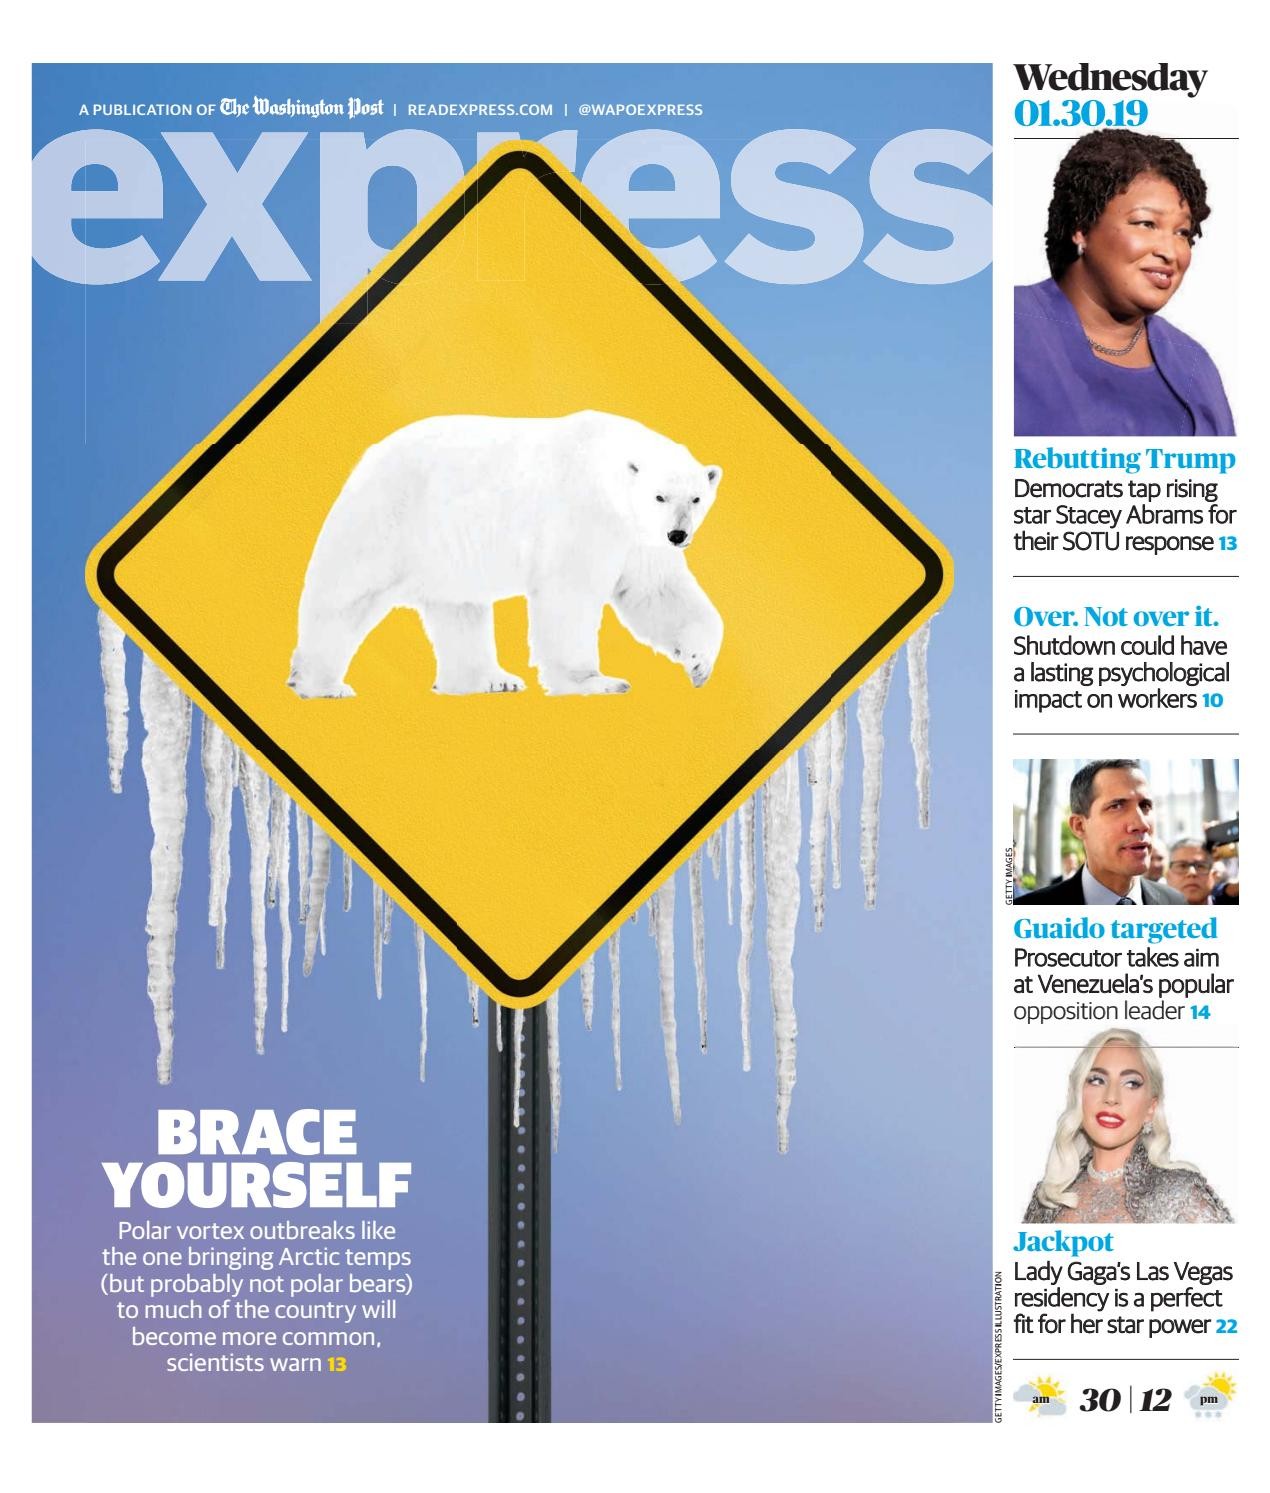 EXPRESS 01302019 by Express - issuu 298823500